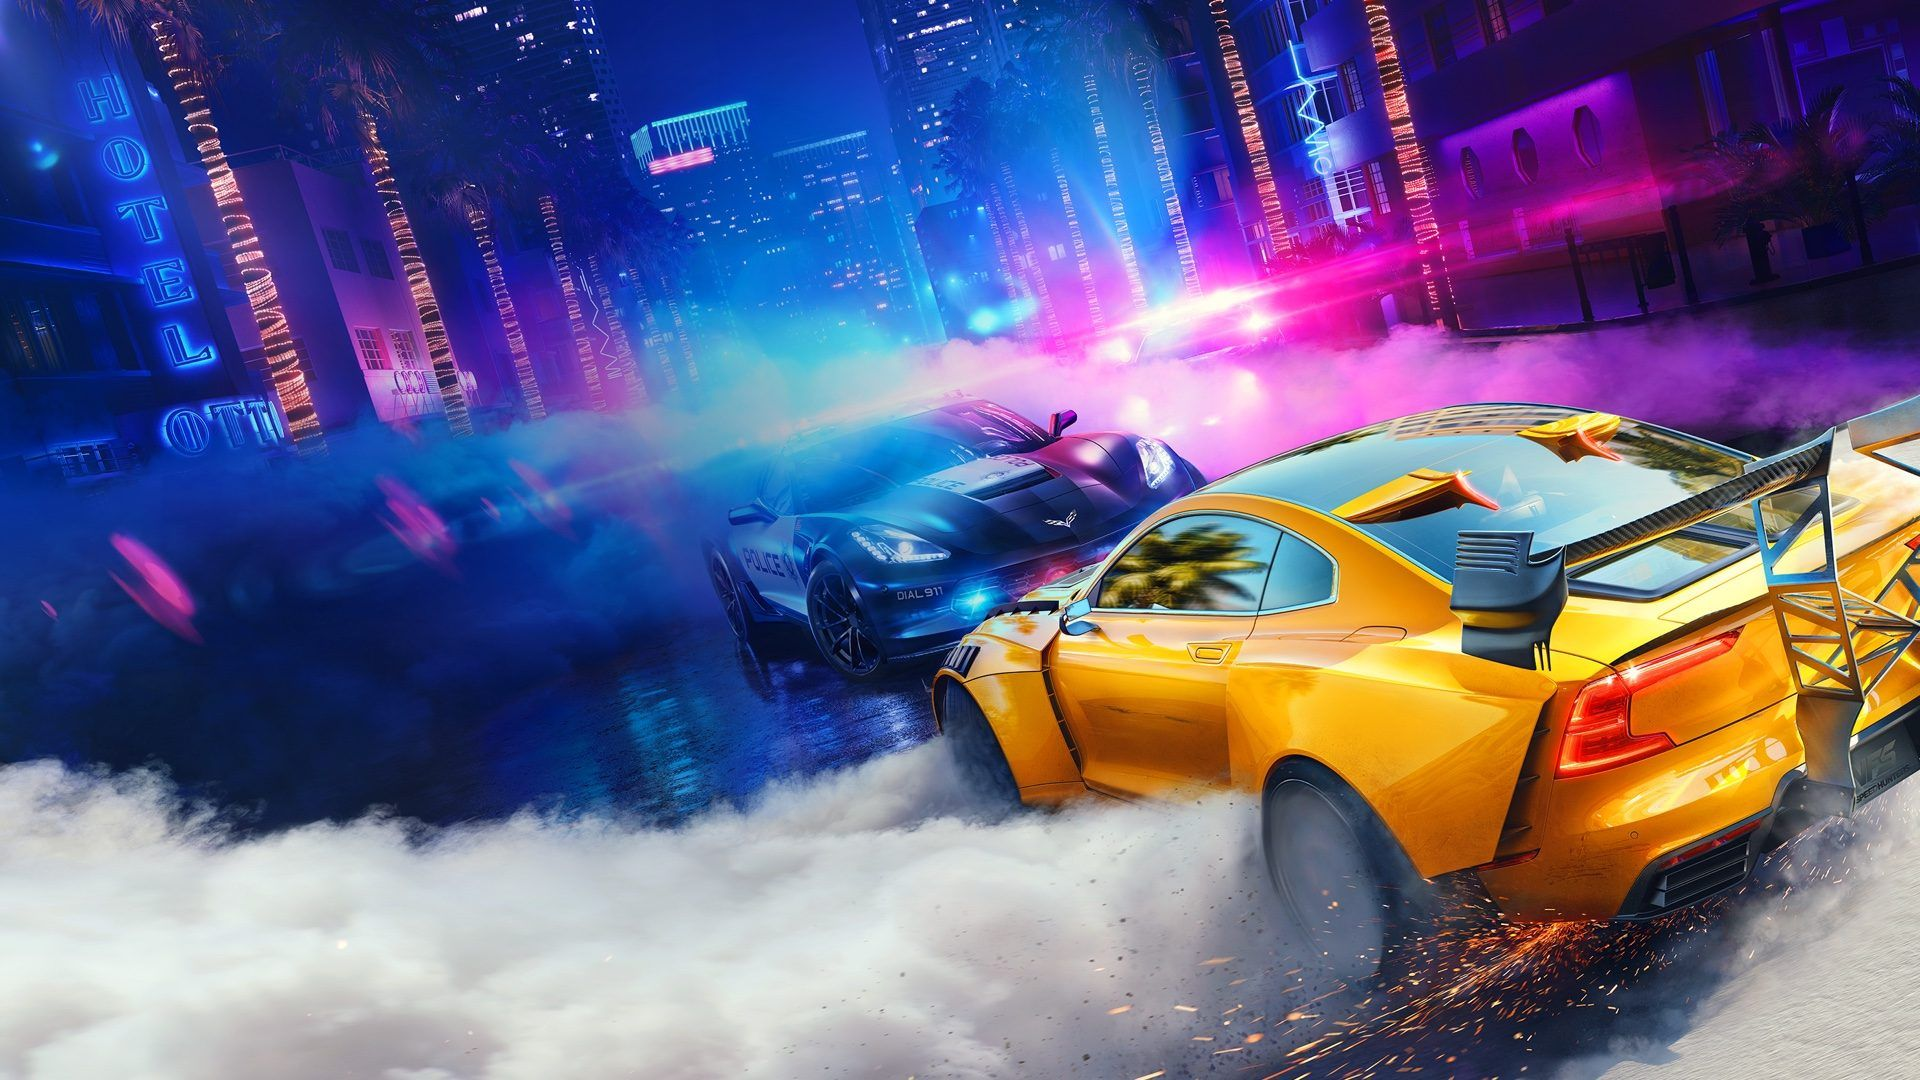 Need For Speed Heat Studio App Adds Augmented Reality